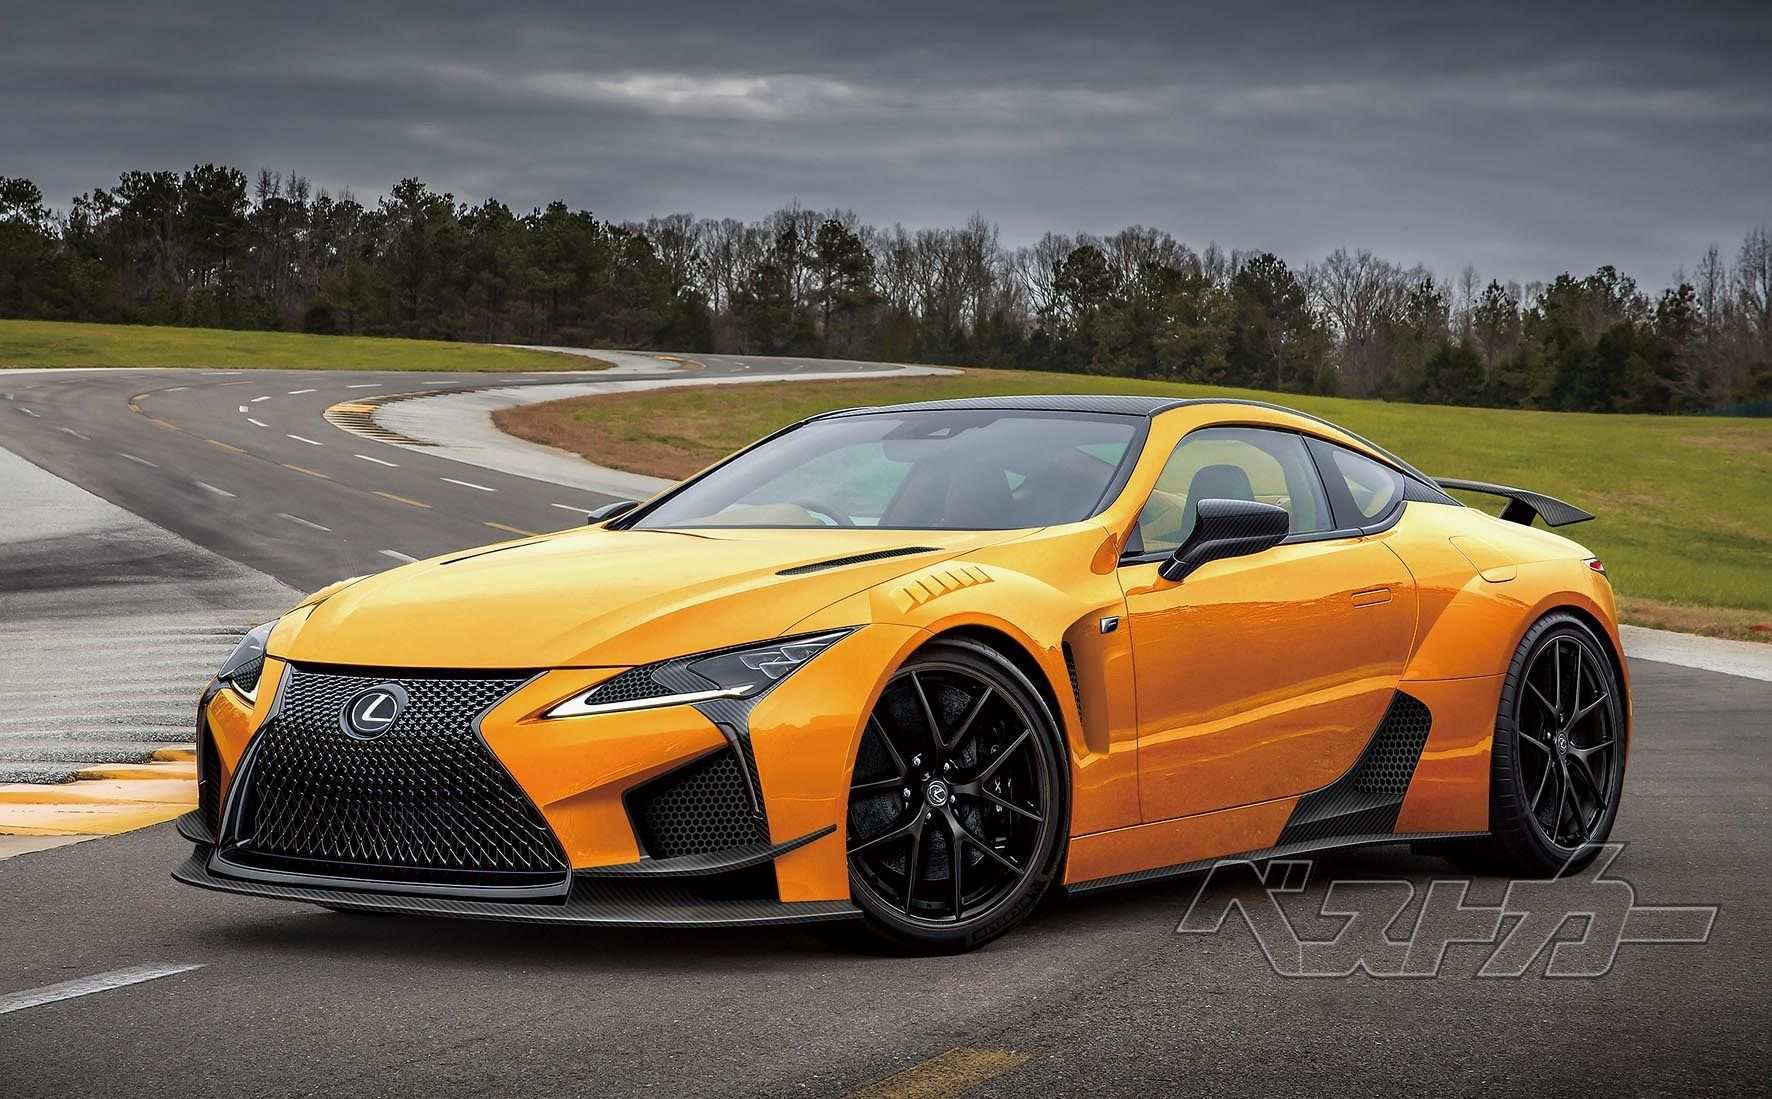 42 New Best Lfa Lexus 2019 Redesign Research New for Best Lfa Lexus 2019 Redesign